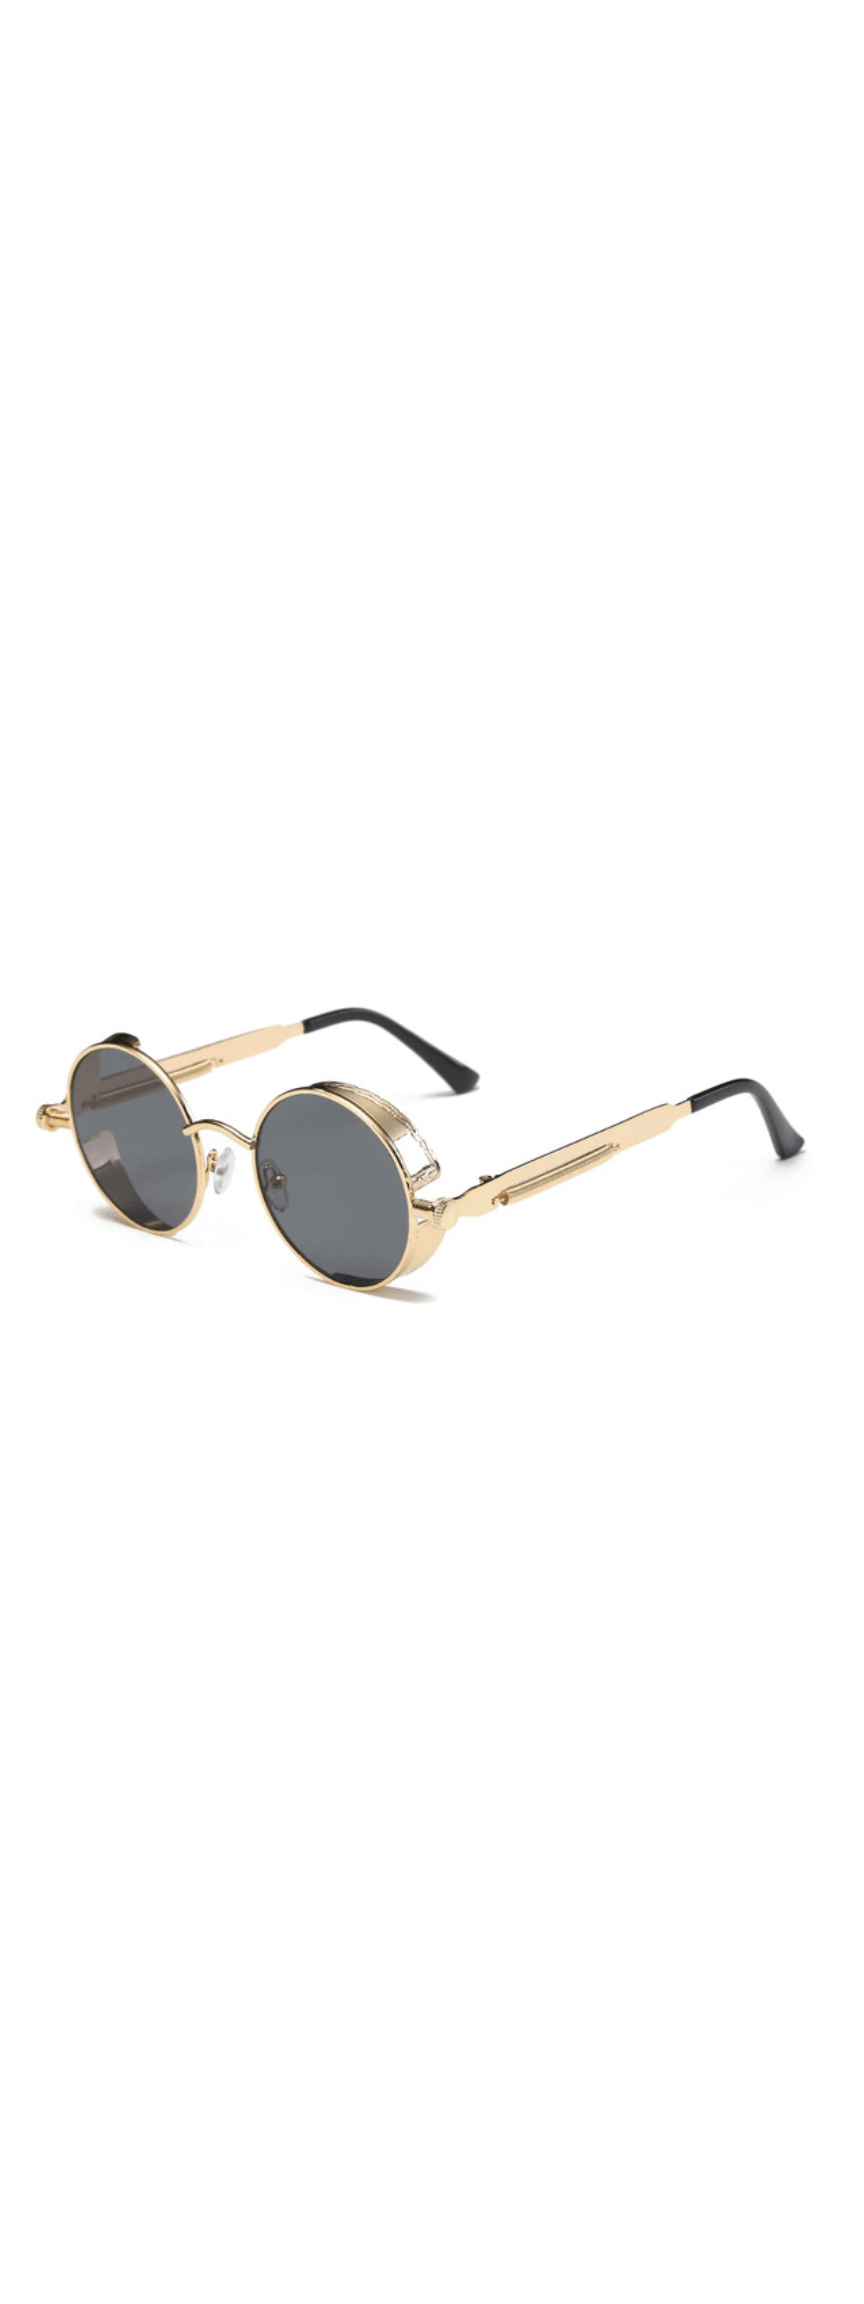 Mad Max Sunglasses - Gold